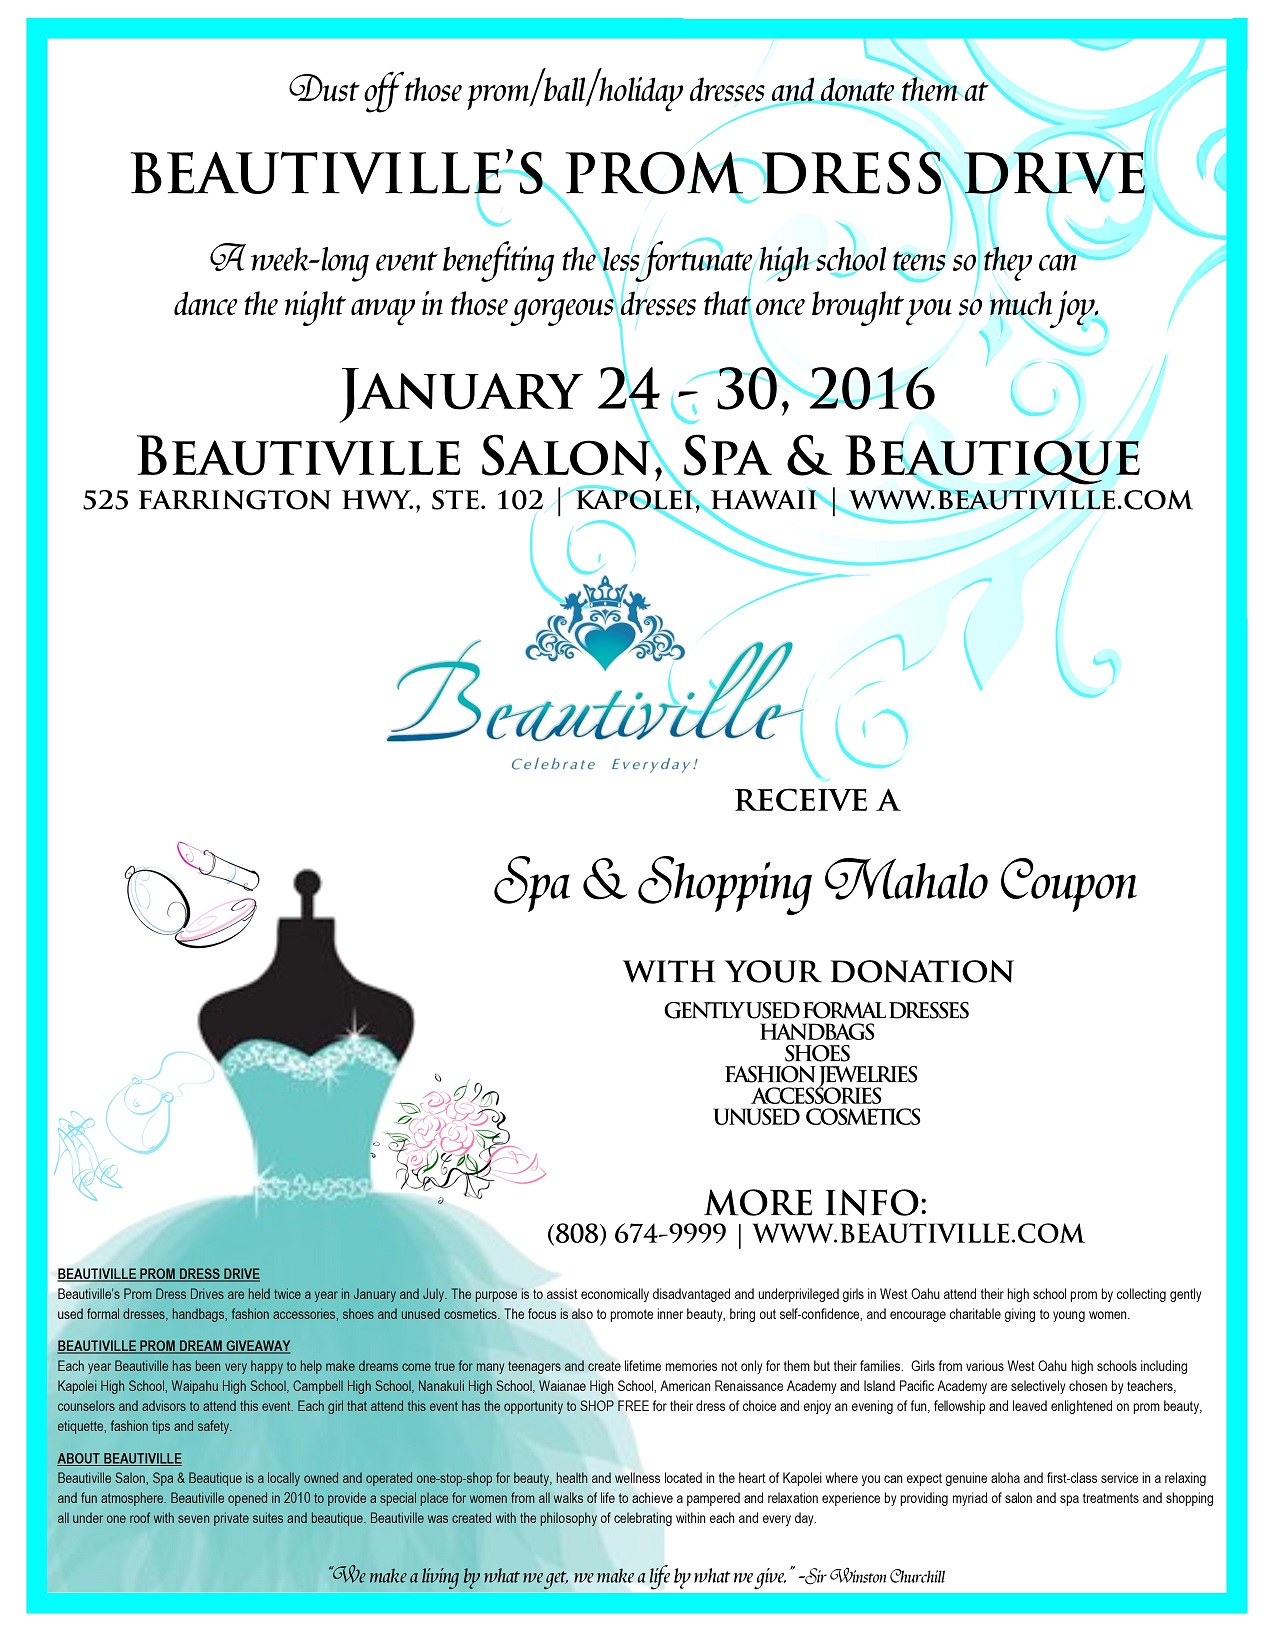 Beautiville Prom Dress Drive - January 2016